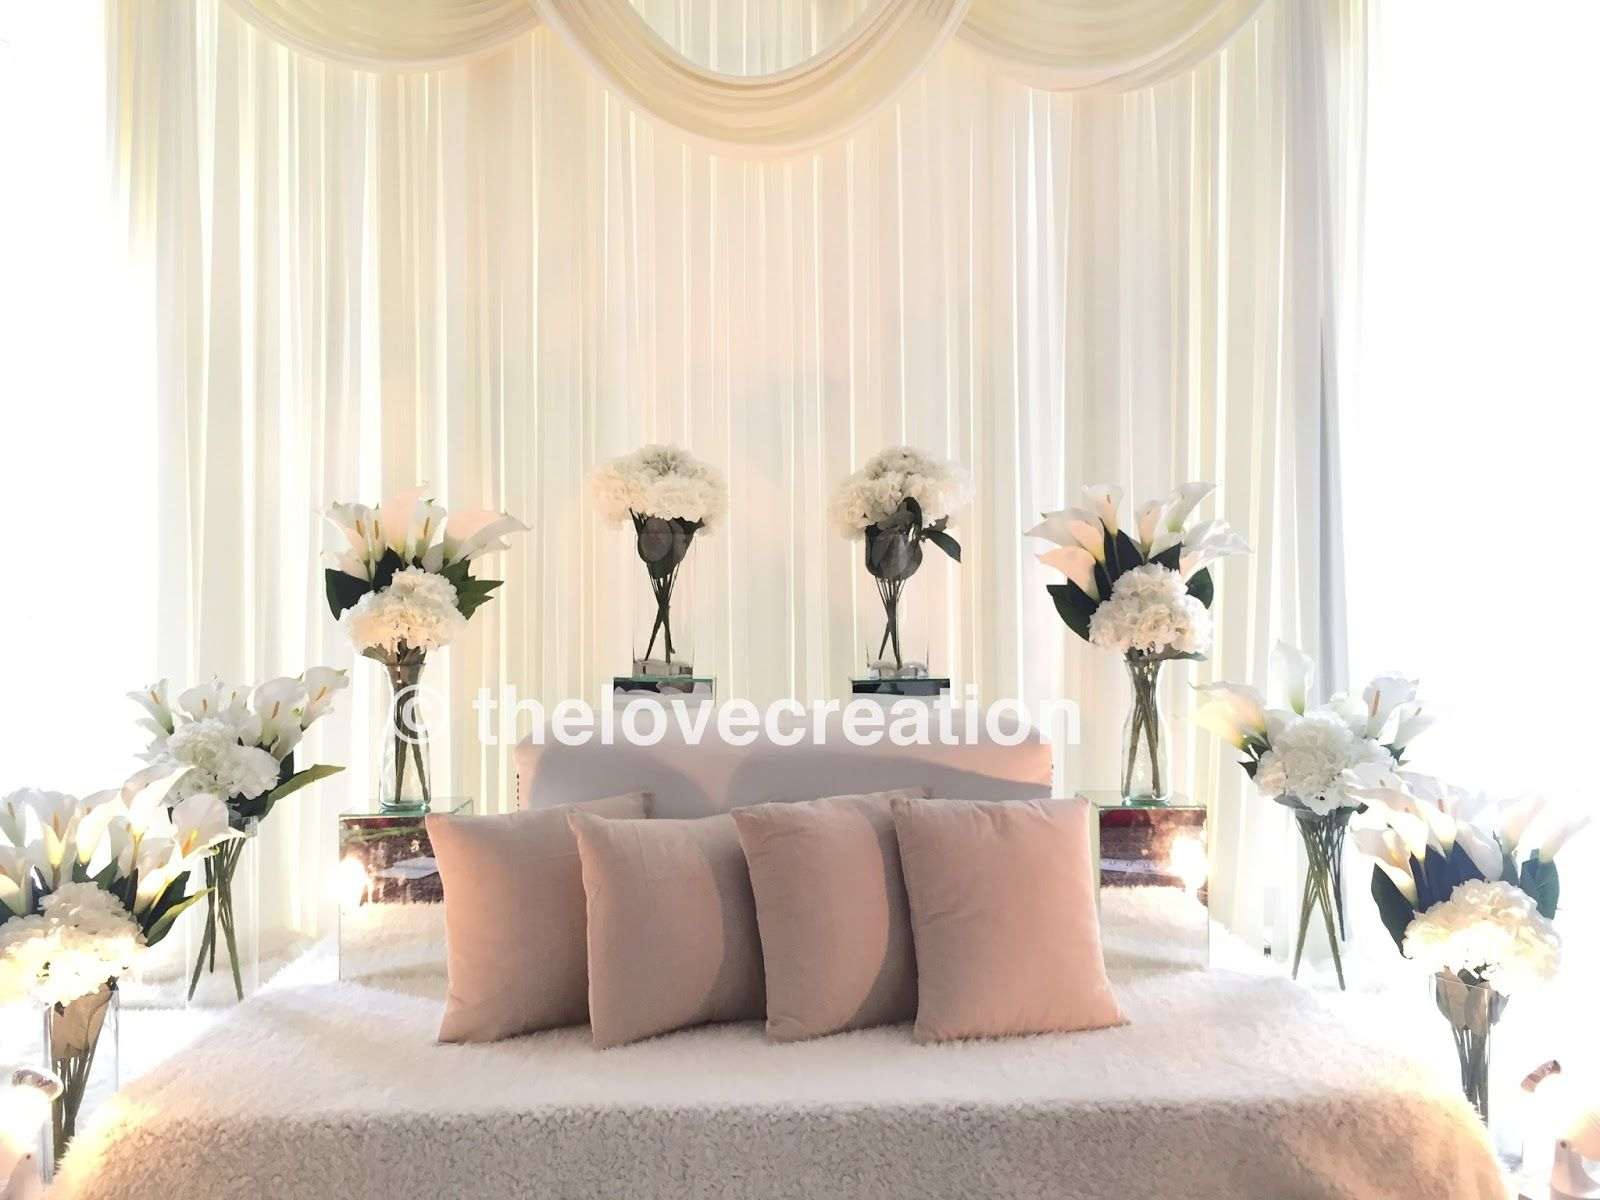 Mini Pelamin Tunang Or Nikah By The Love Creation Any Booking Enquiries Whatsapp 011 27126148